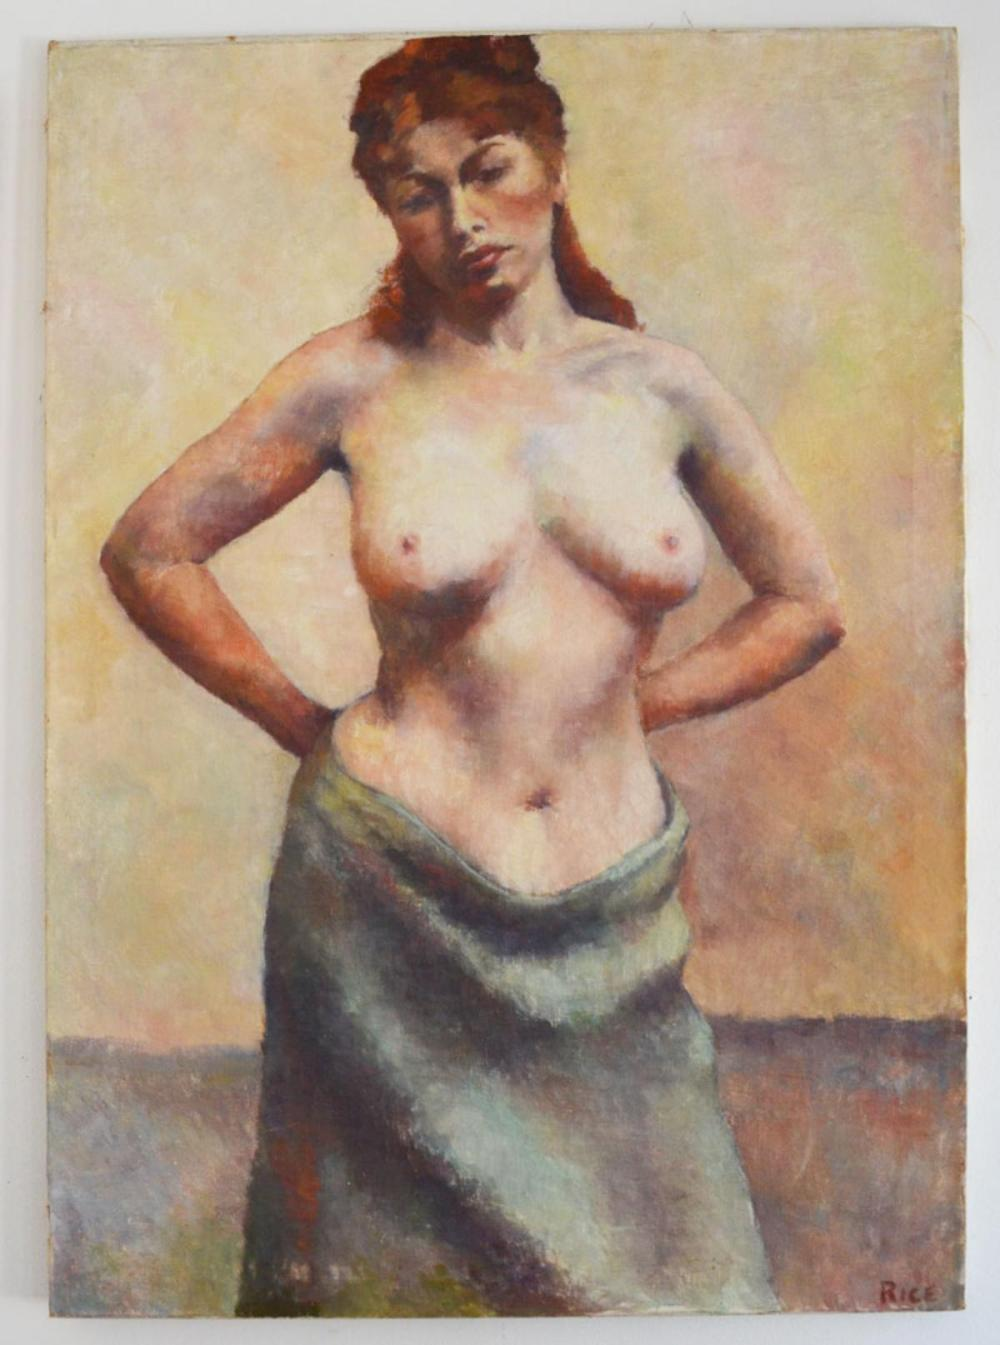 Anne Rice Nude Woman Portrait Oil Painting